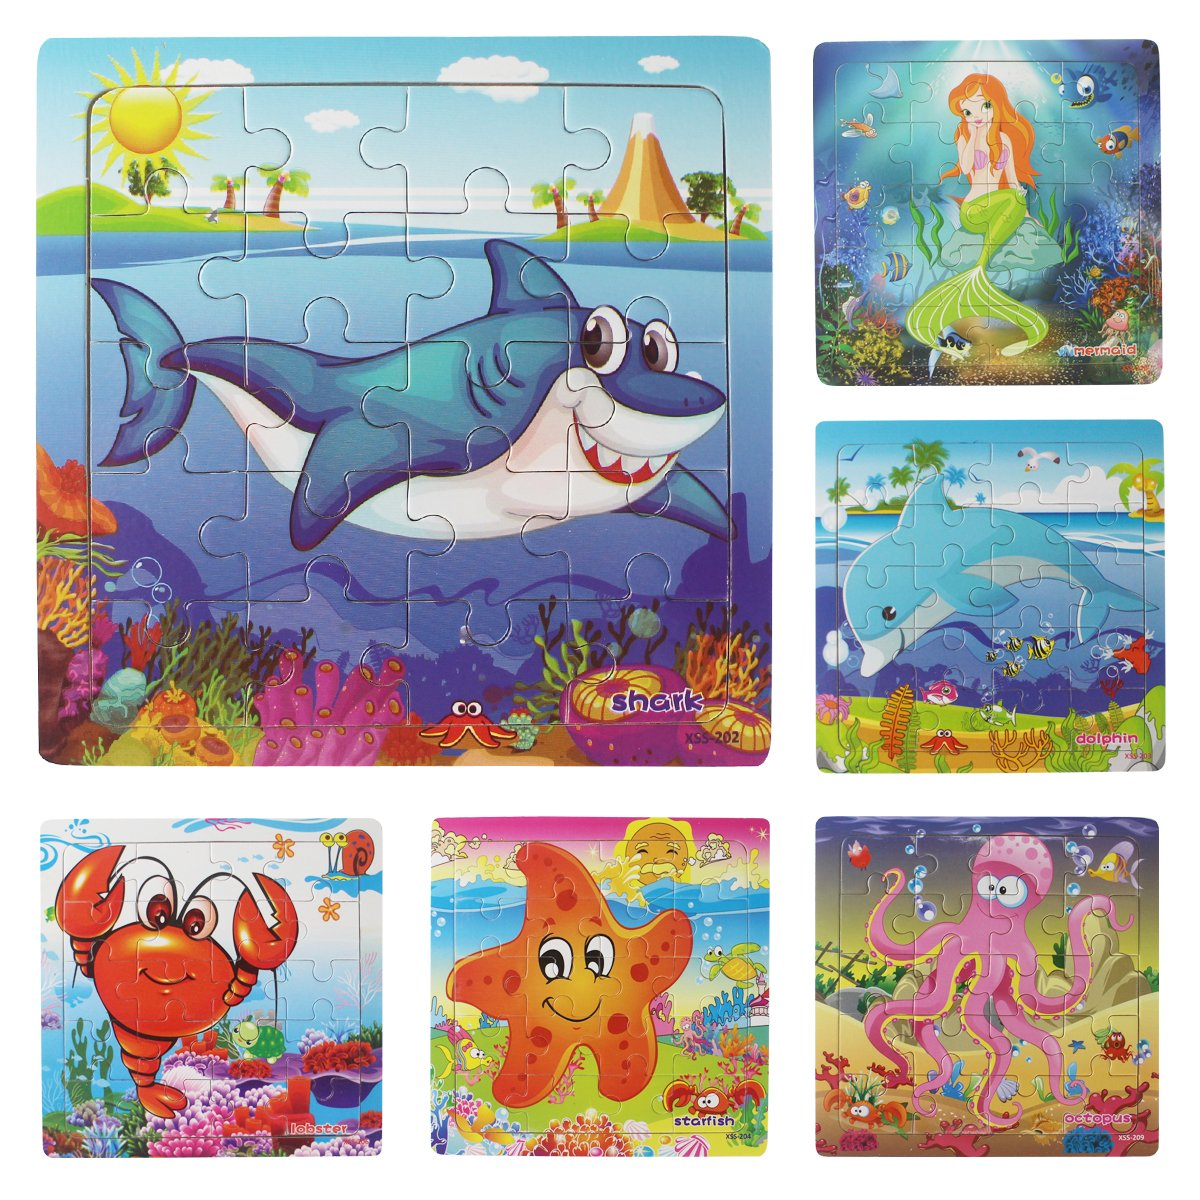 Meshion Wooden Jigsaw Puzzles With Storage Tray Ocean Set Kids Toys Preschool Learning Game For 3-5 Years Old Child,Boys,Girls,Pack Of 6(Mermaid,Octopus,Shark,Starfish,Dolphin,Lobster)